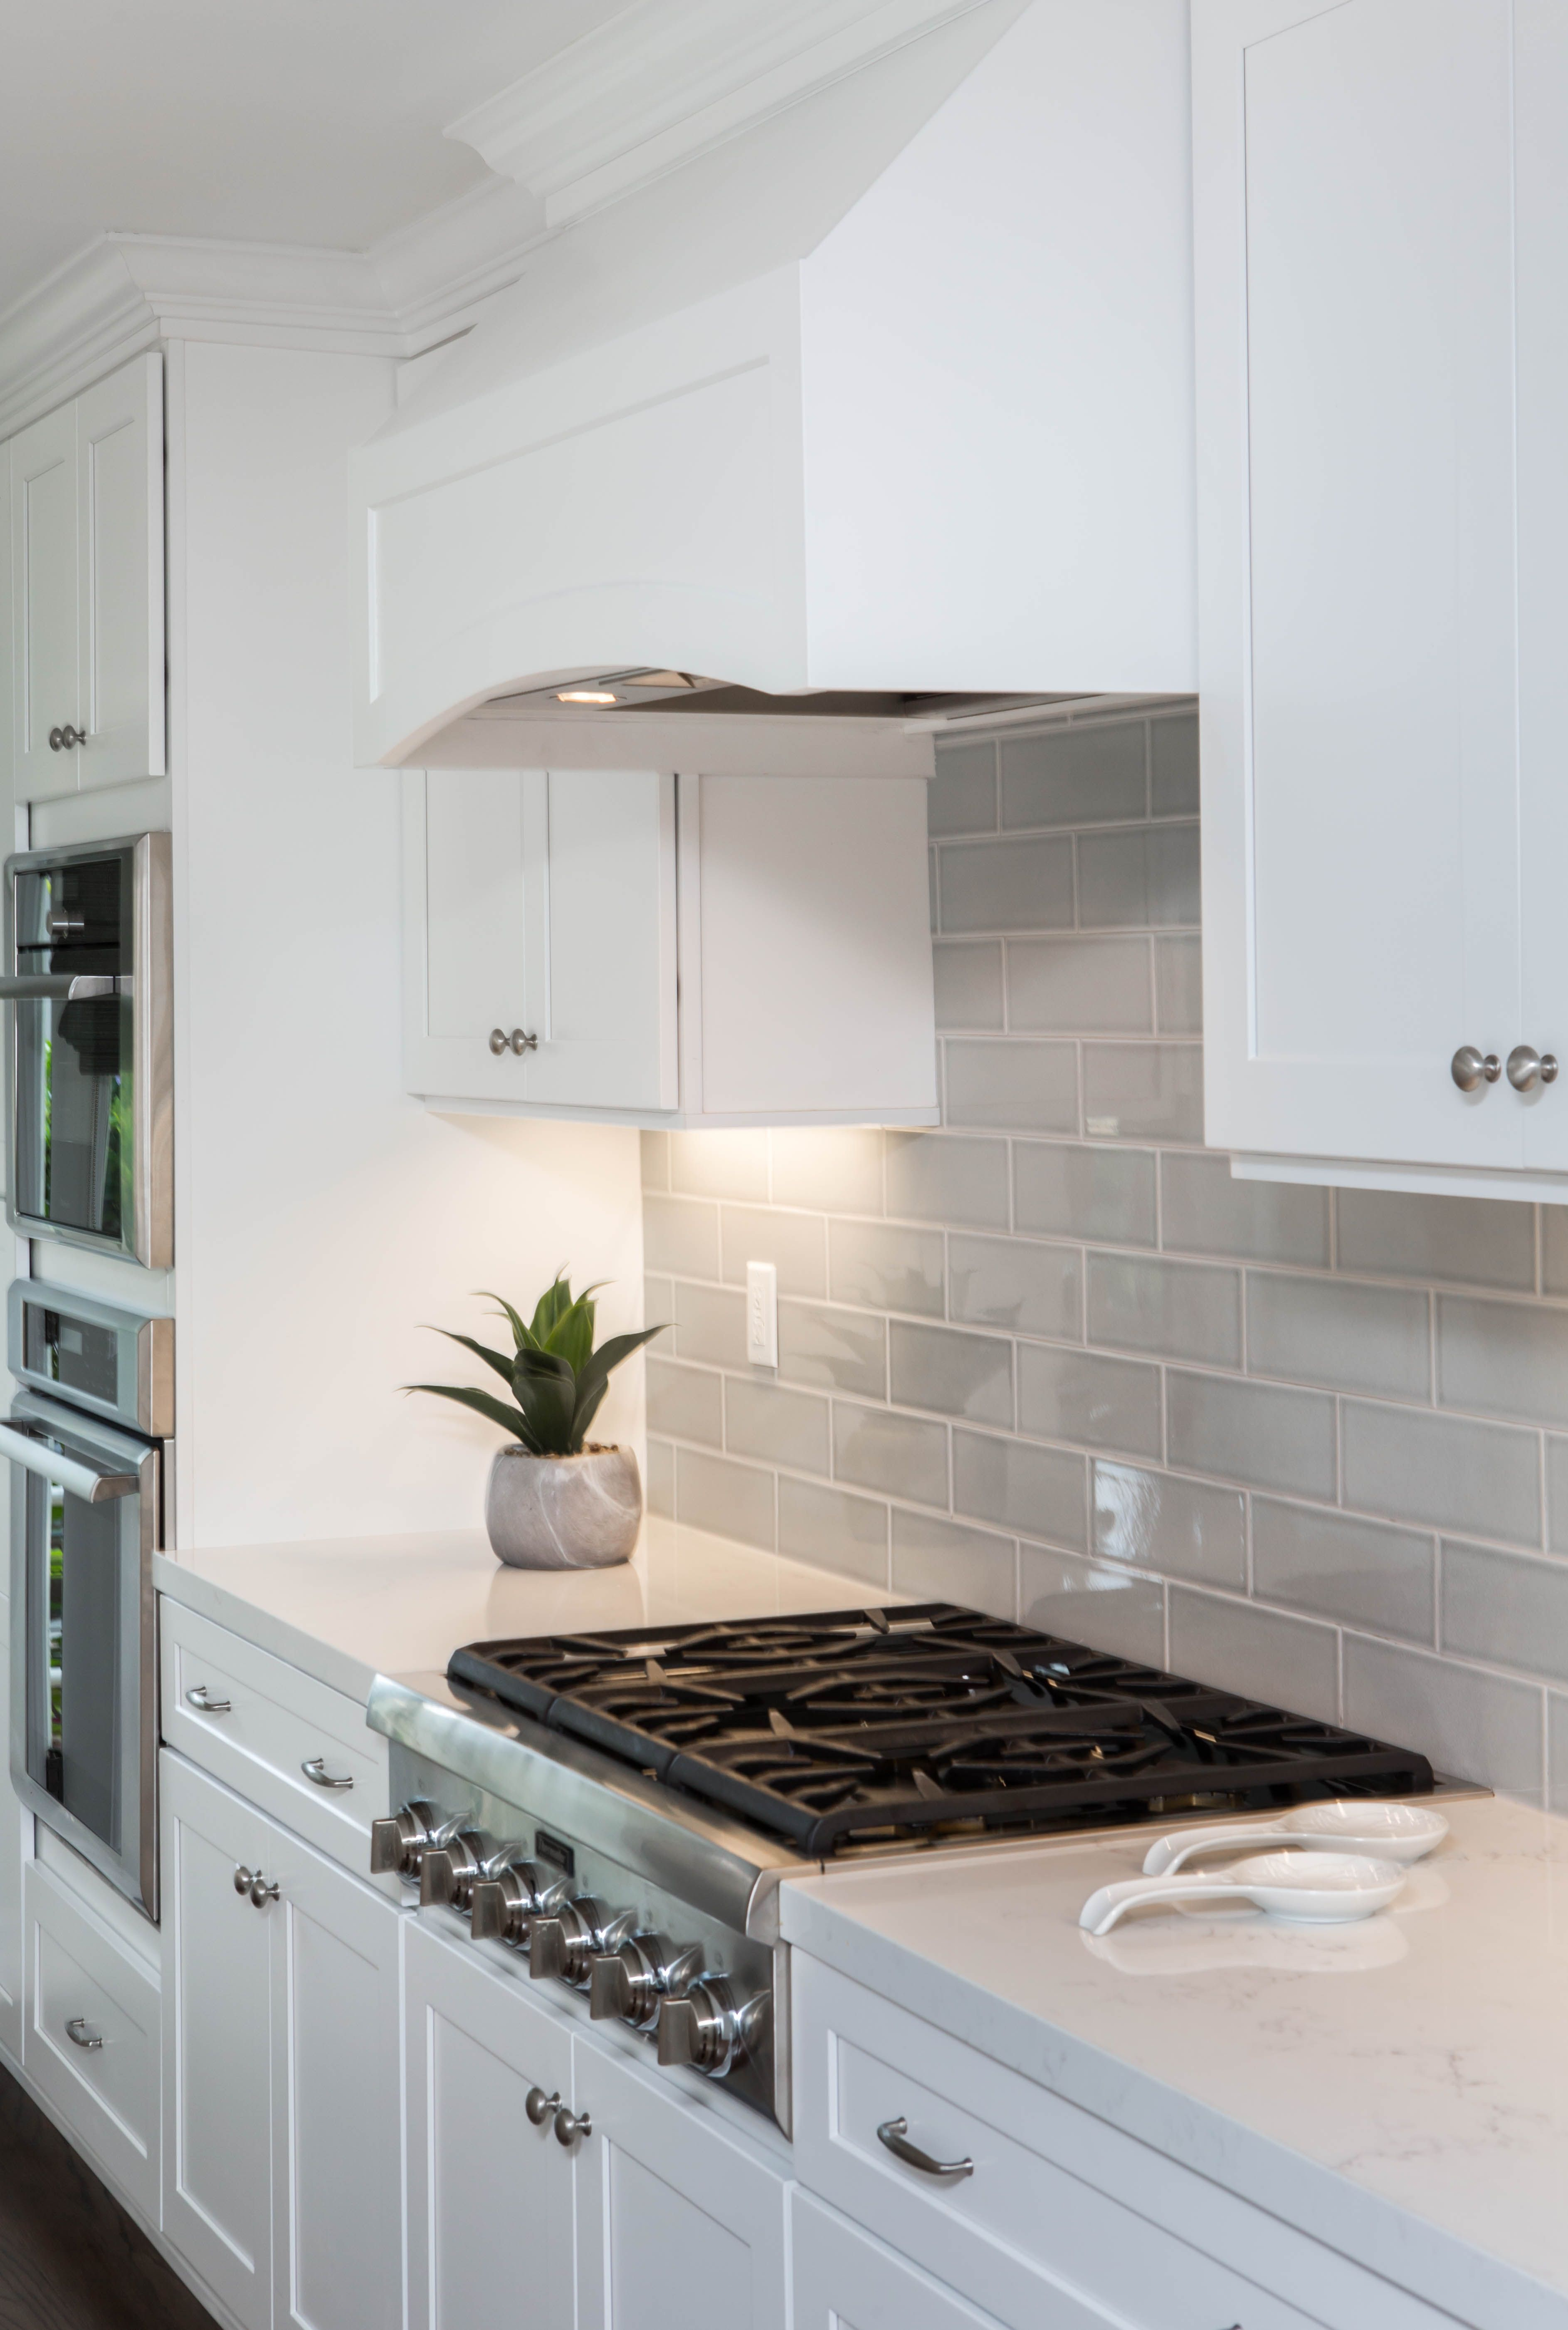 A Transitional Style Kitchen Remodel White Cabinets And Ocean